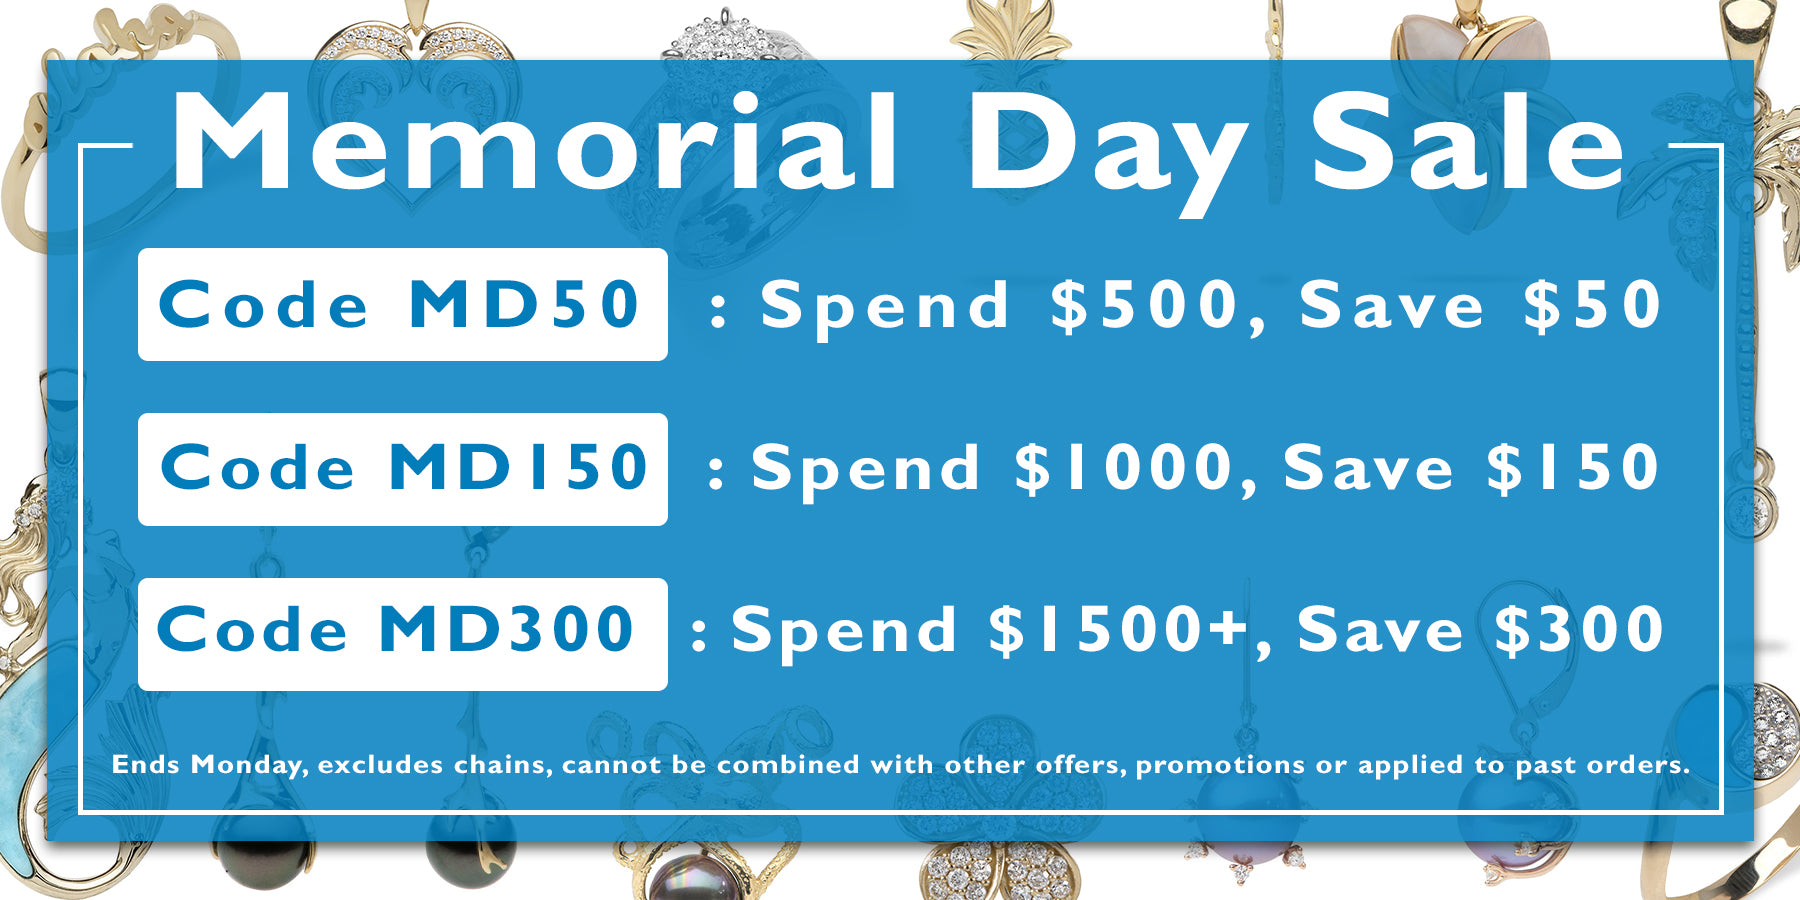 Memorial Day Sale Promotion